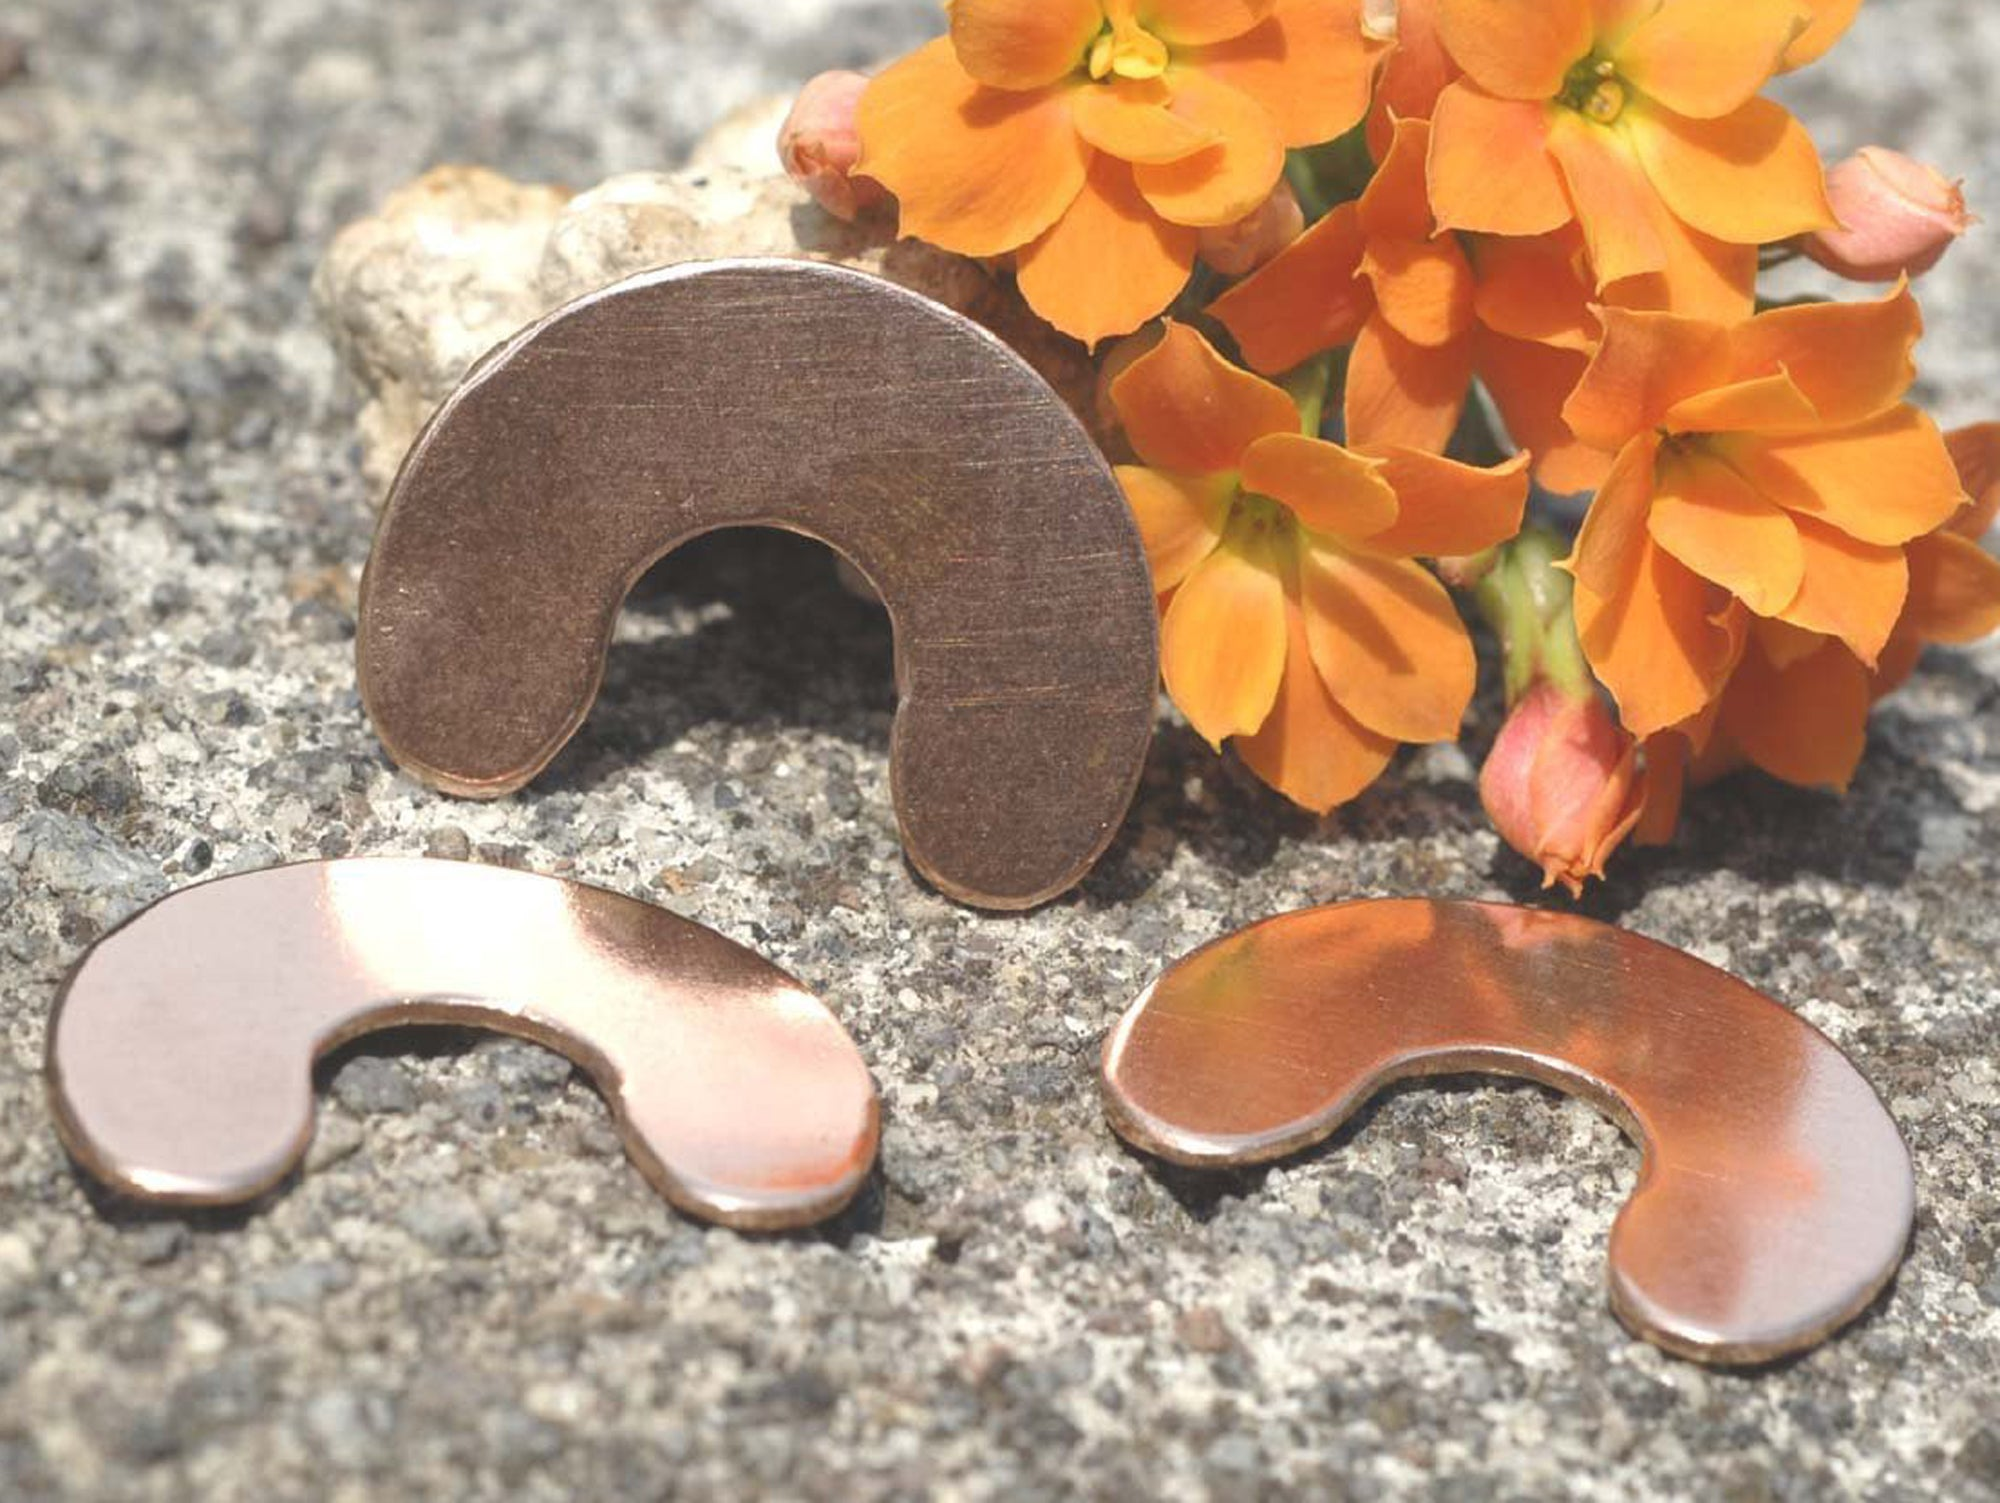 Buy Copper U Blanks 25mm for Enameling Stamping Texturing Soldering Shape Charms Jewelry Making - 6 pieces online